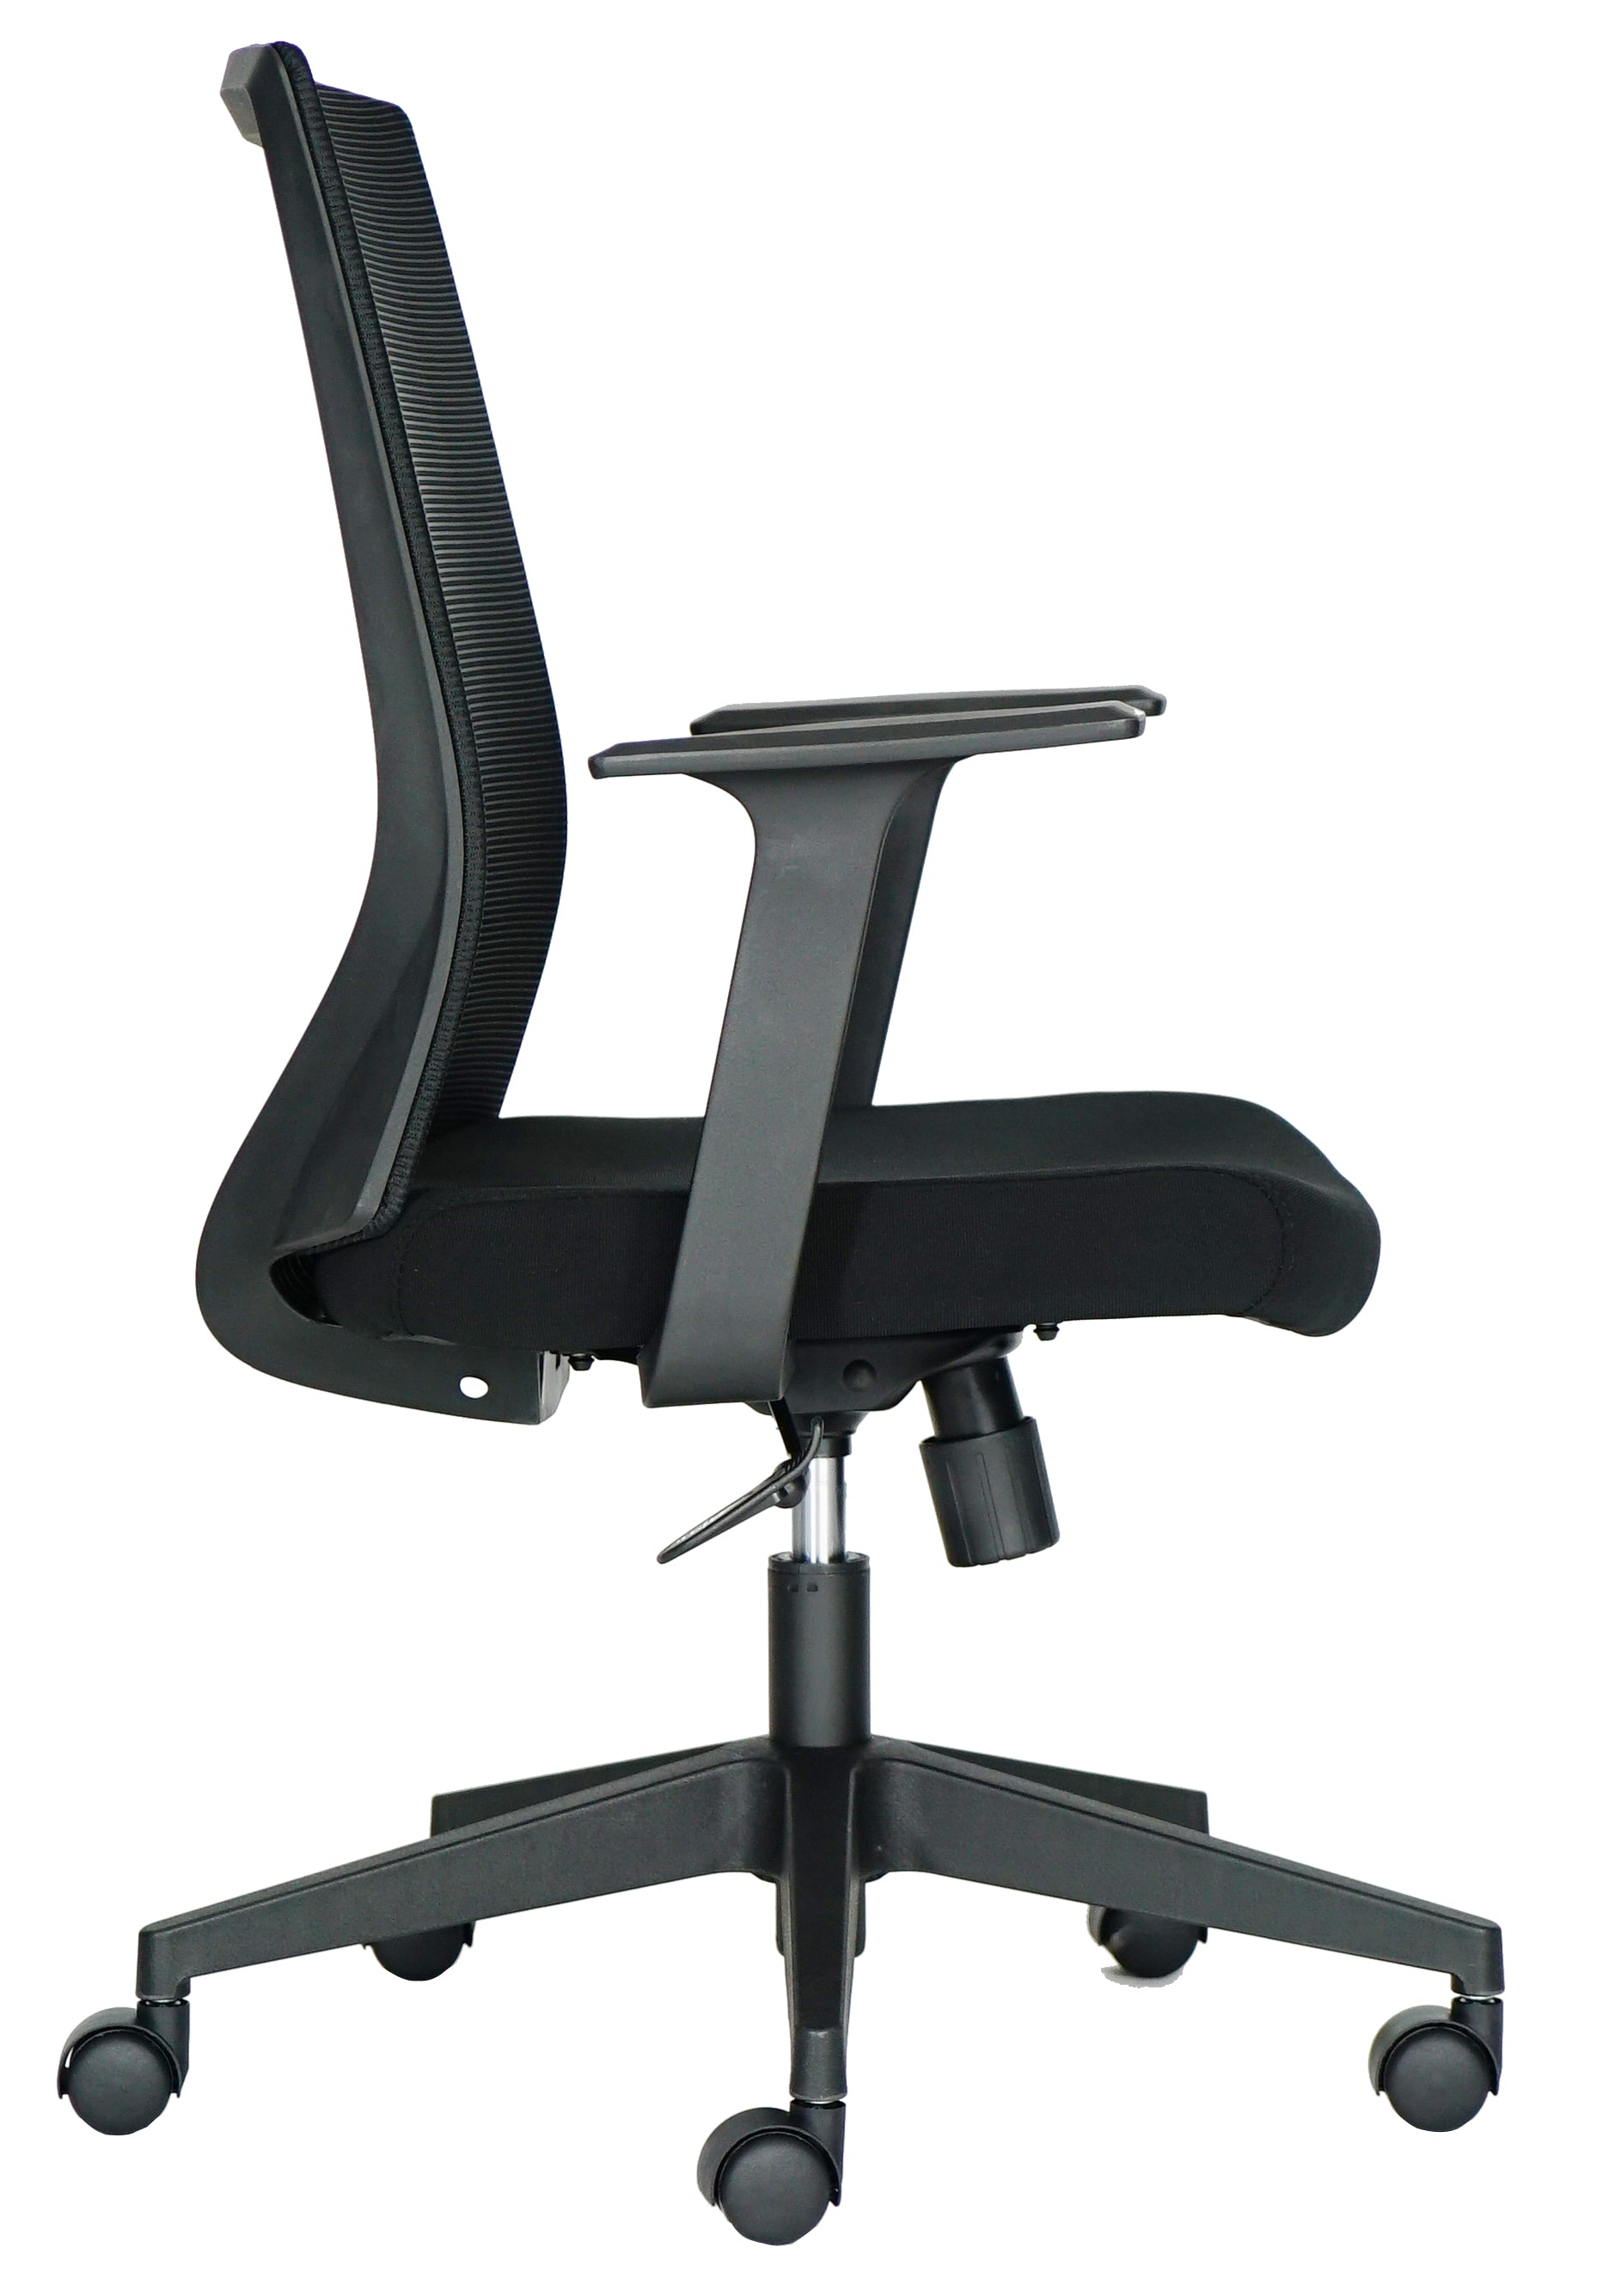 Silla Ejecutiva Vision Black RB - offimobile